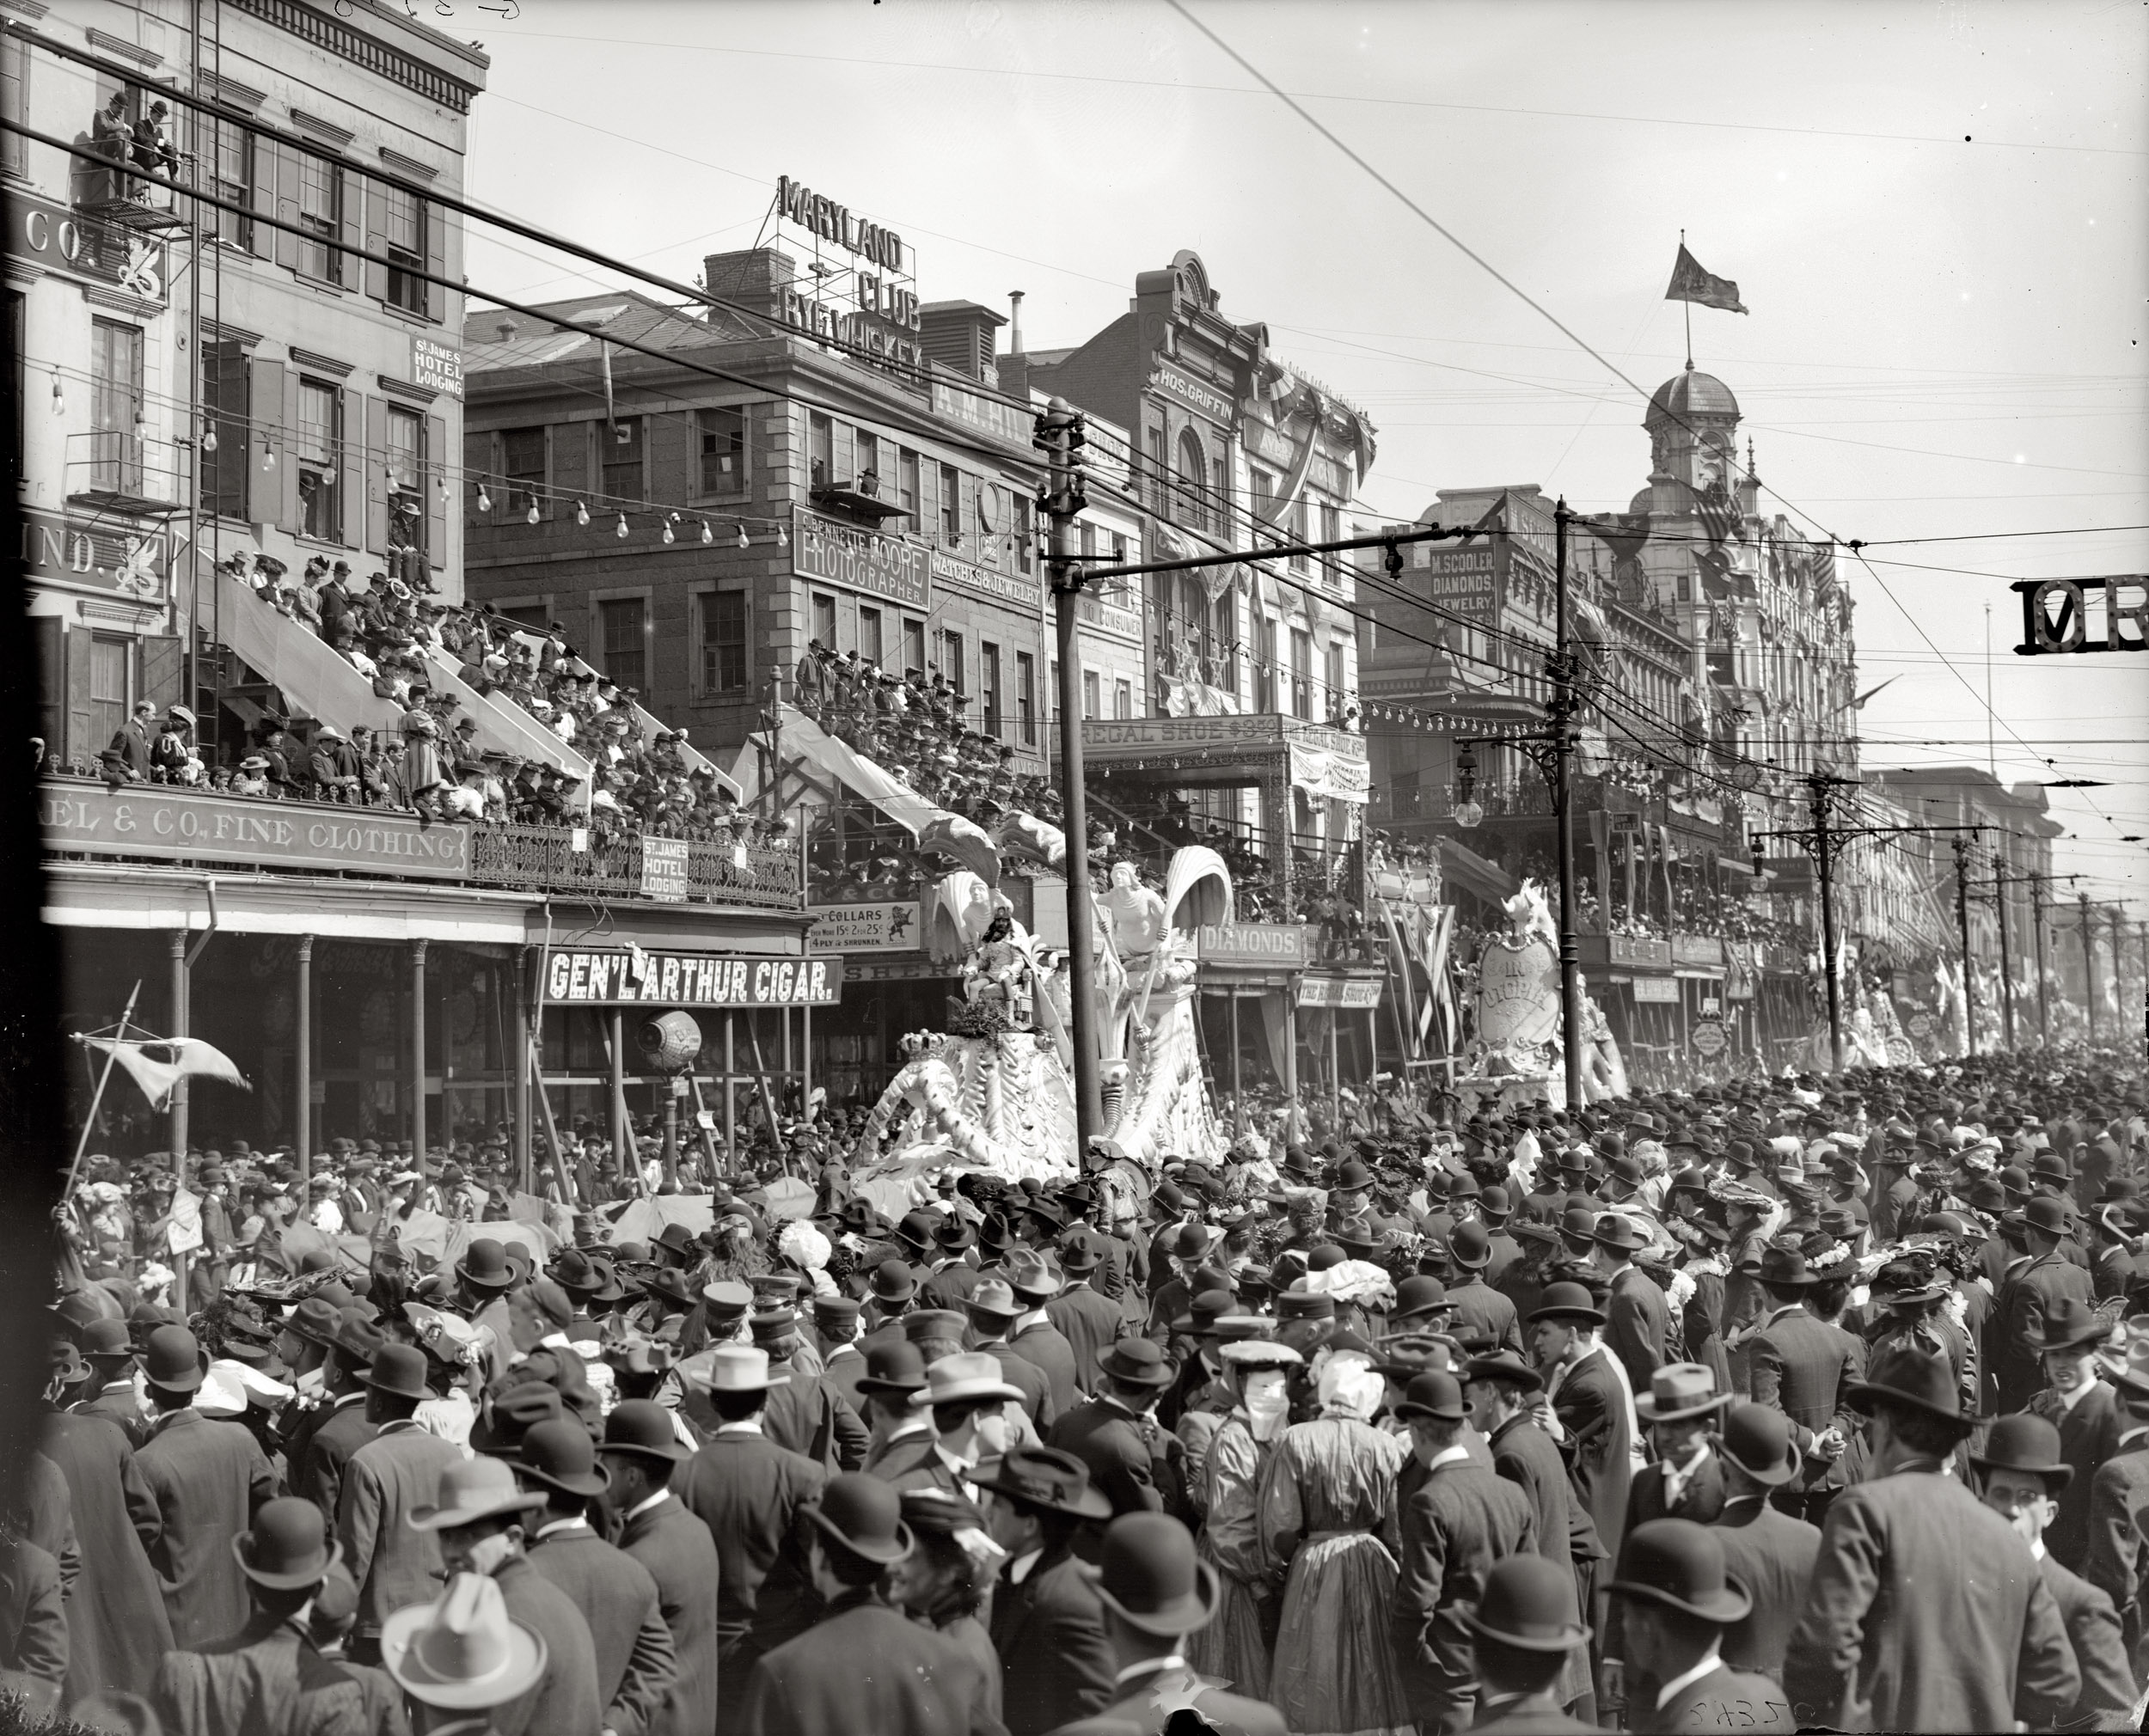 The Motley Krewes of Mardi Gras: A Glimpse into the Past